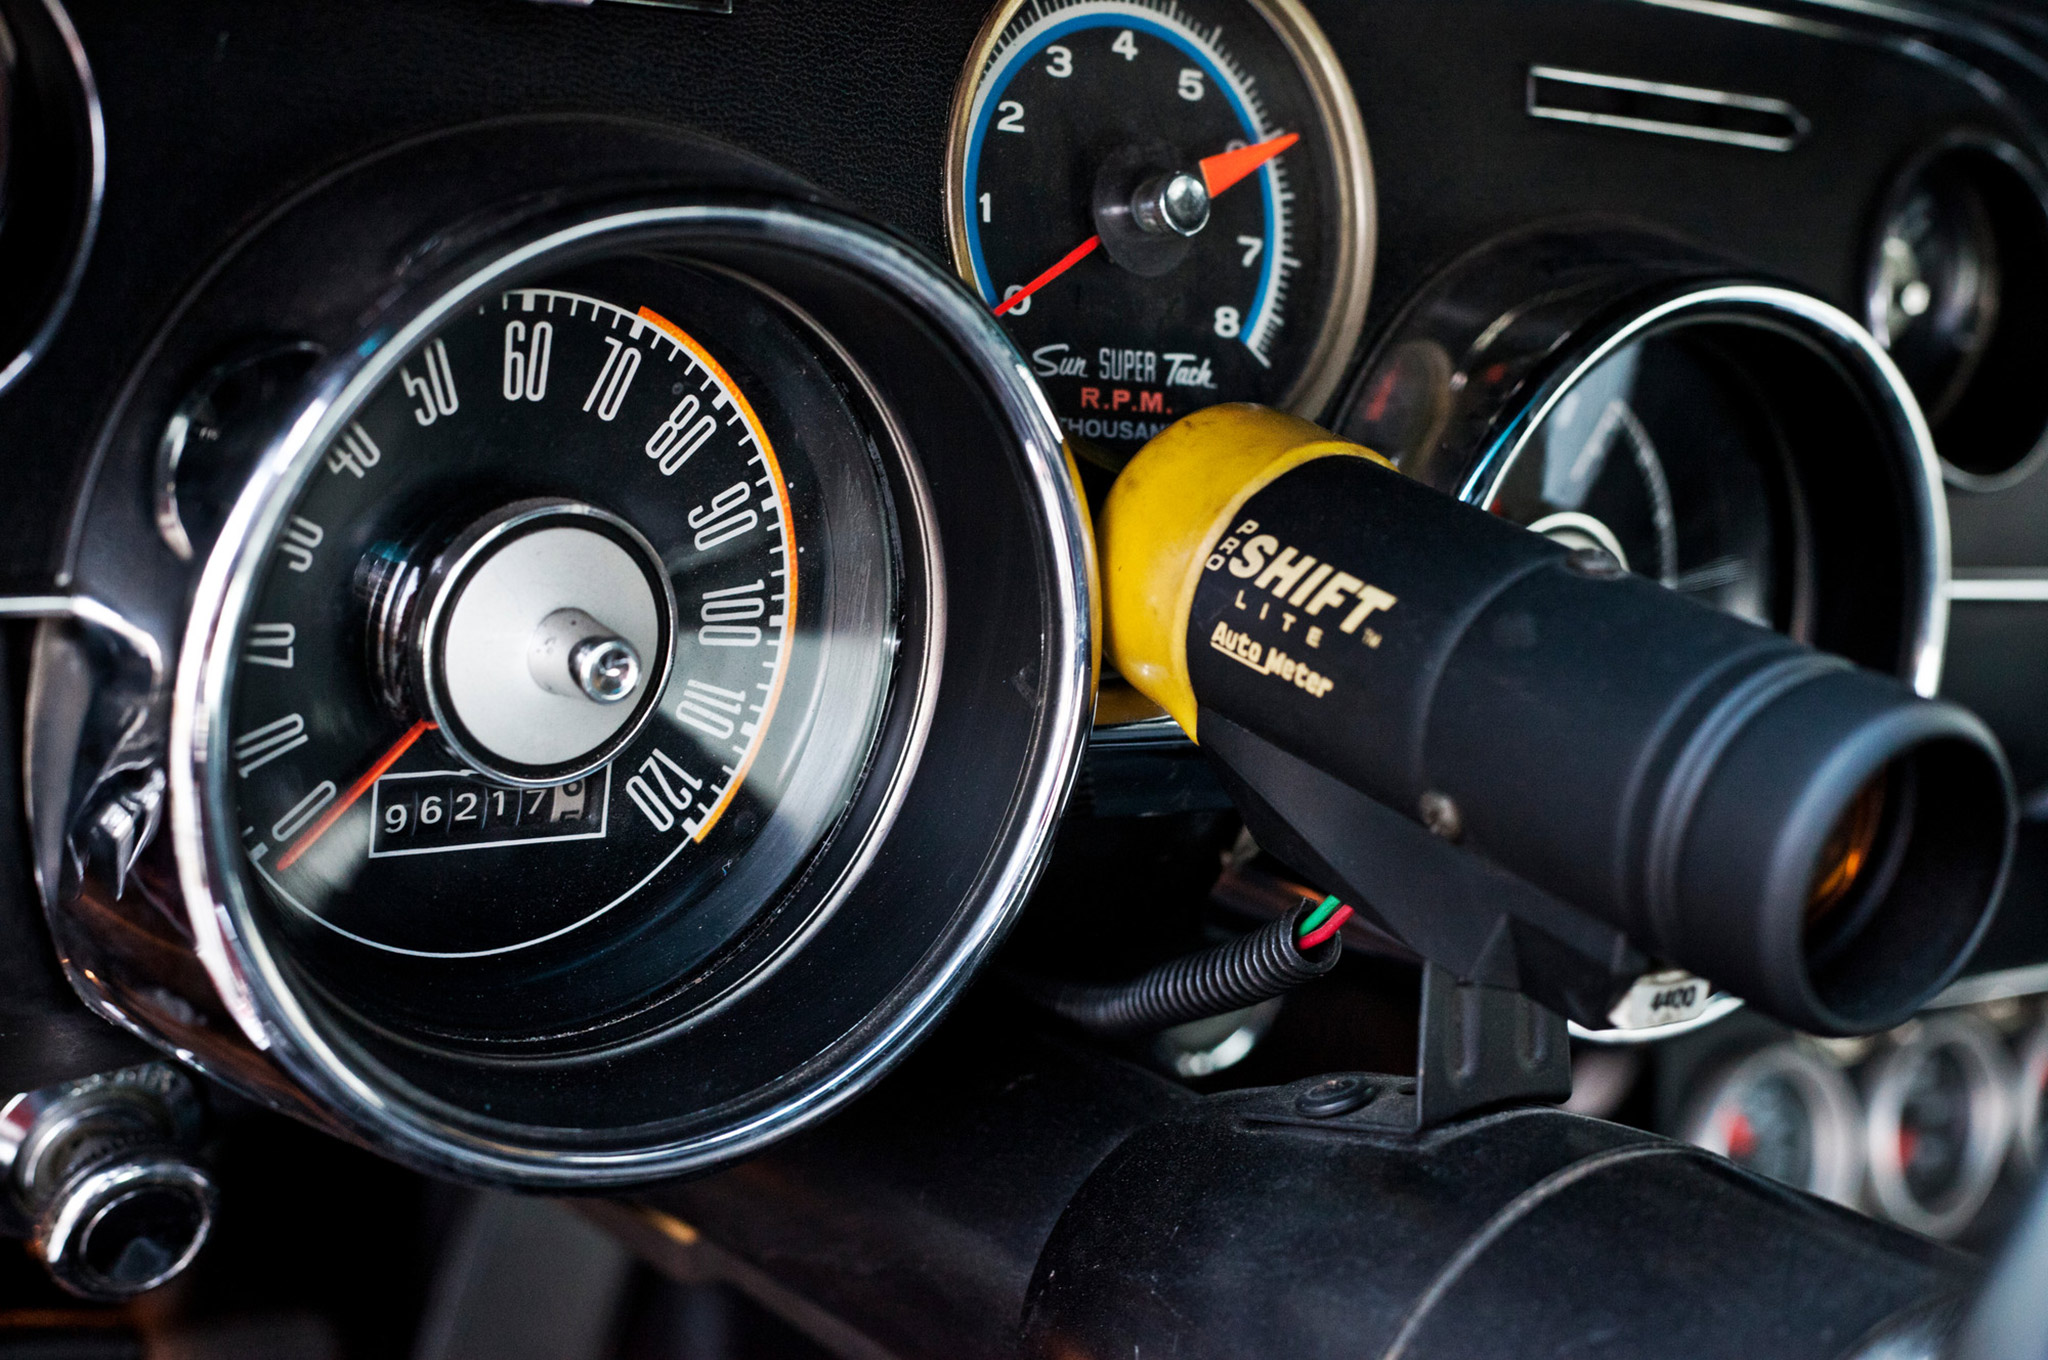 A Sun Super Tach is augmented with this Auto Meter shift light.